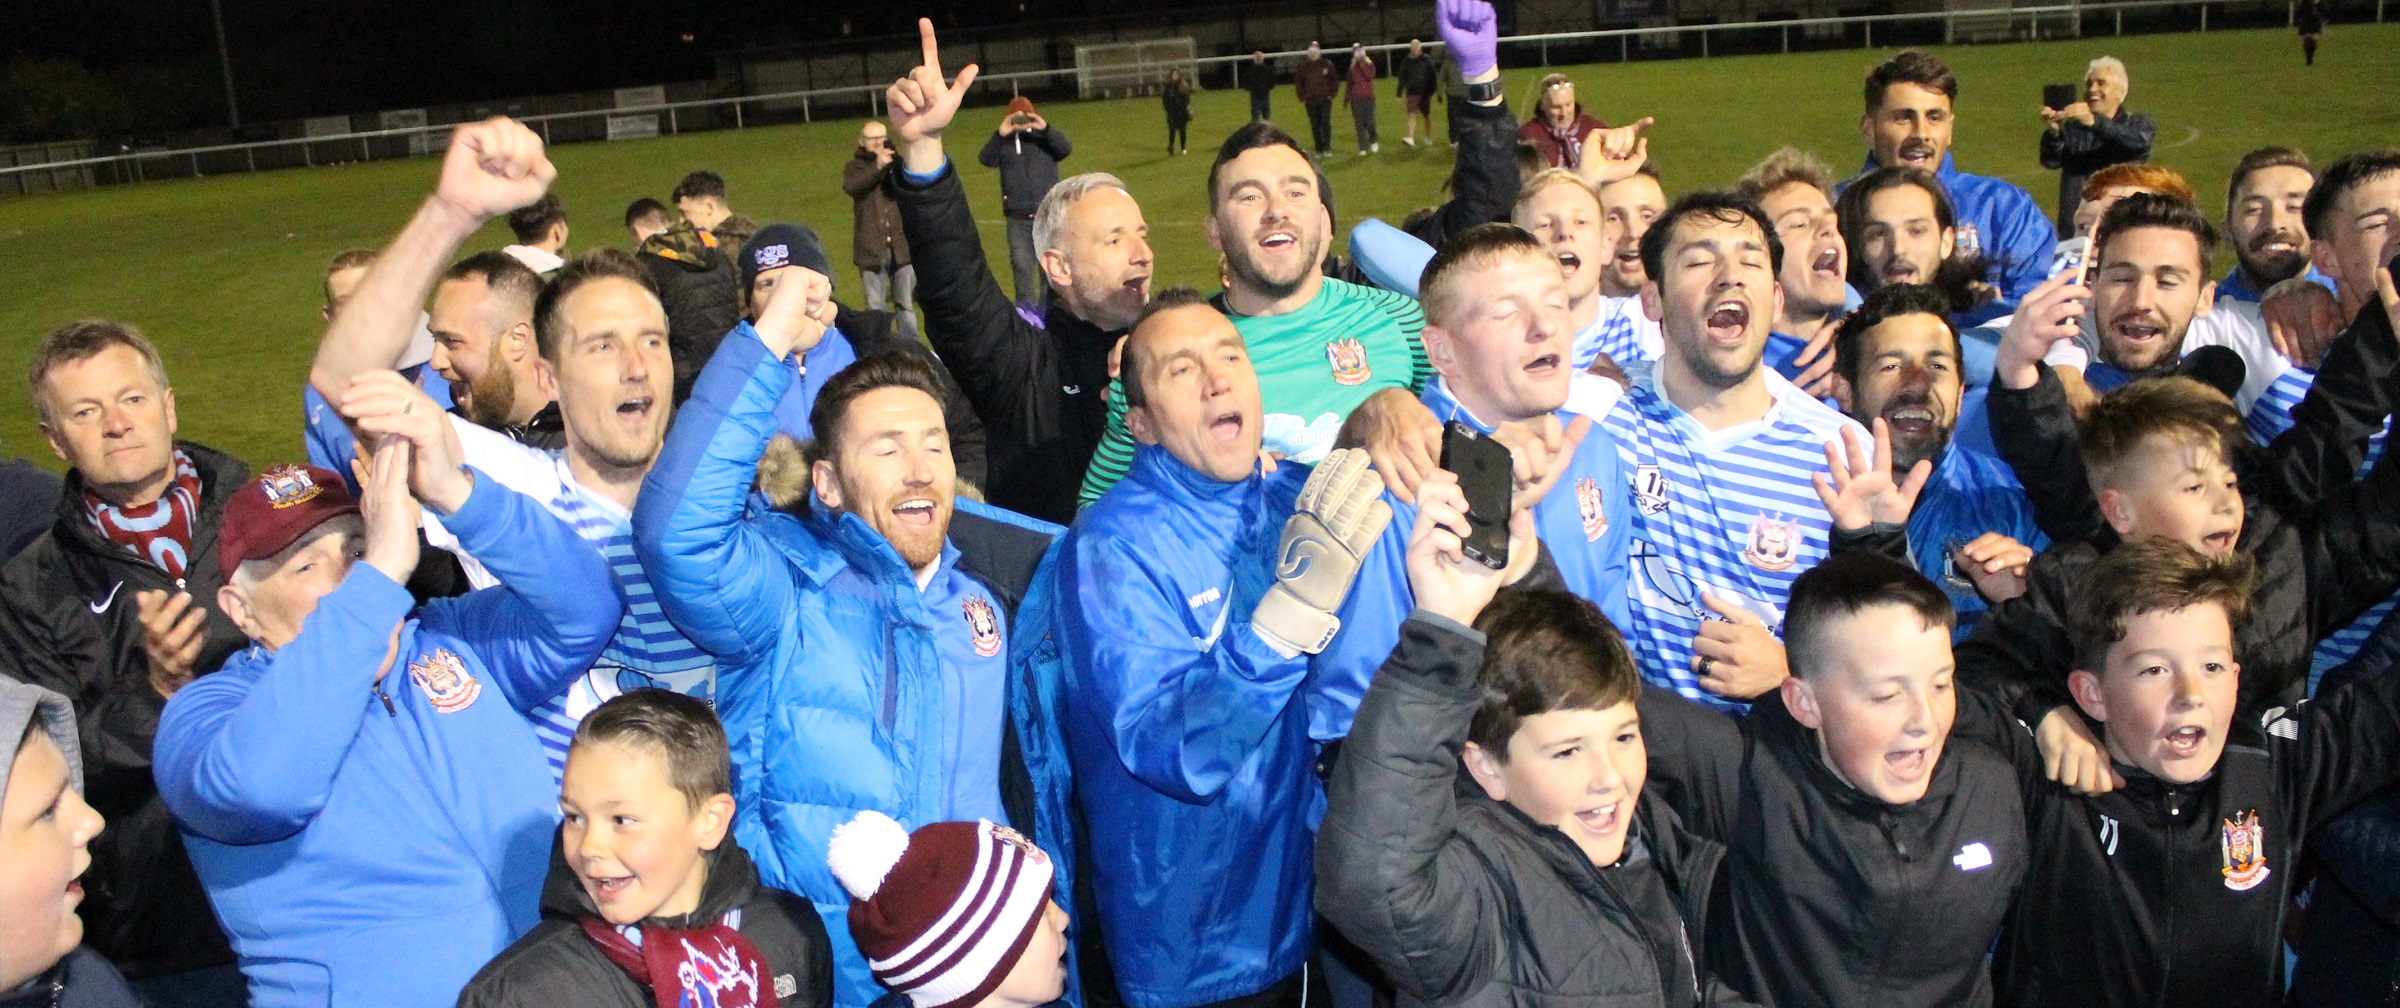 League trophy to be presented after Saturday's game at Guisborough